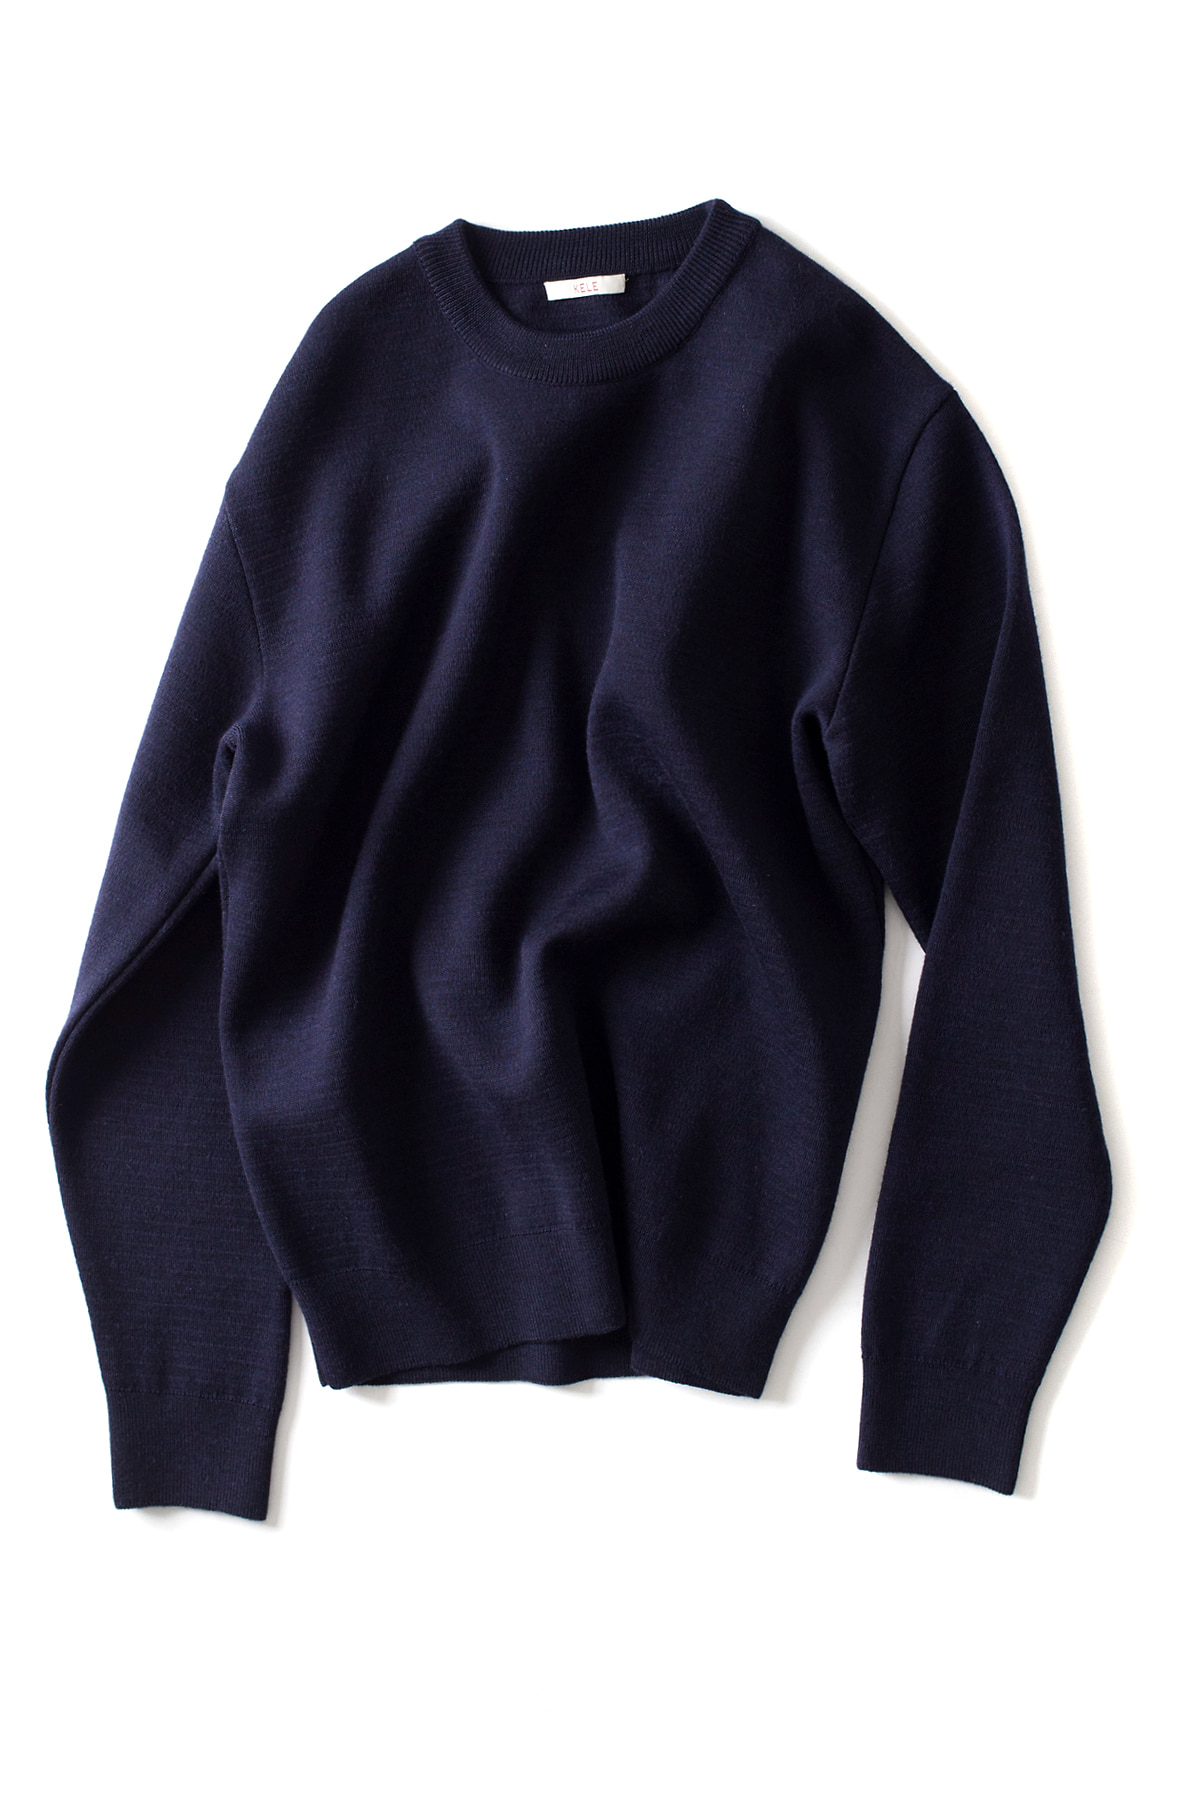 KELE Clothing : MOG (Navy)